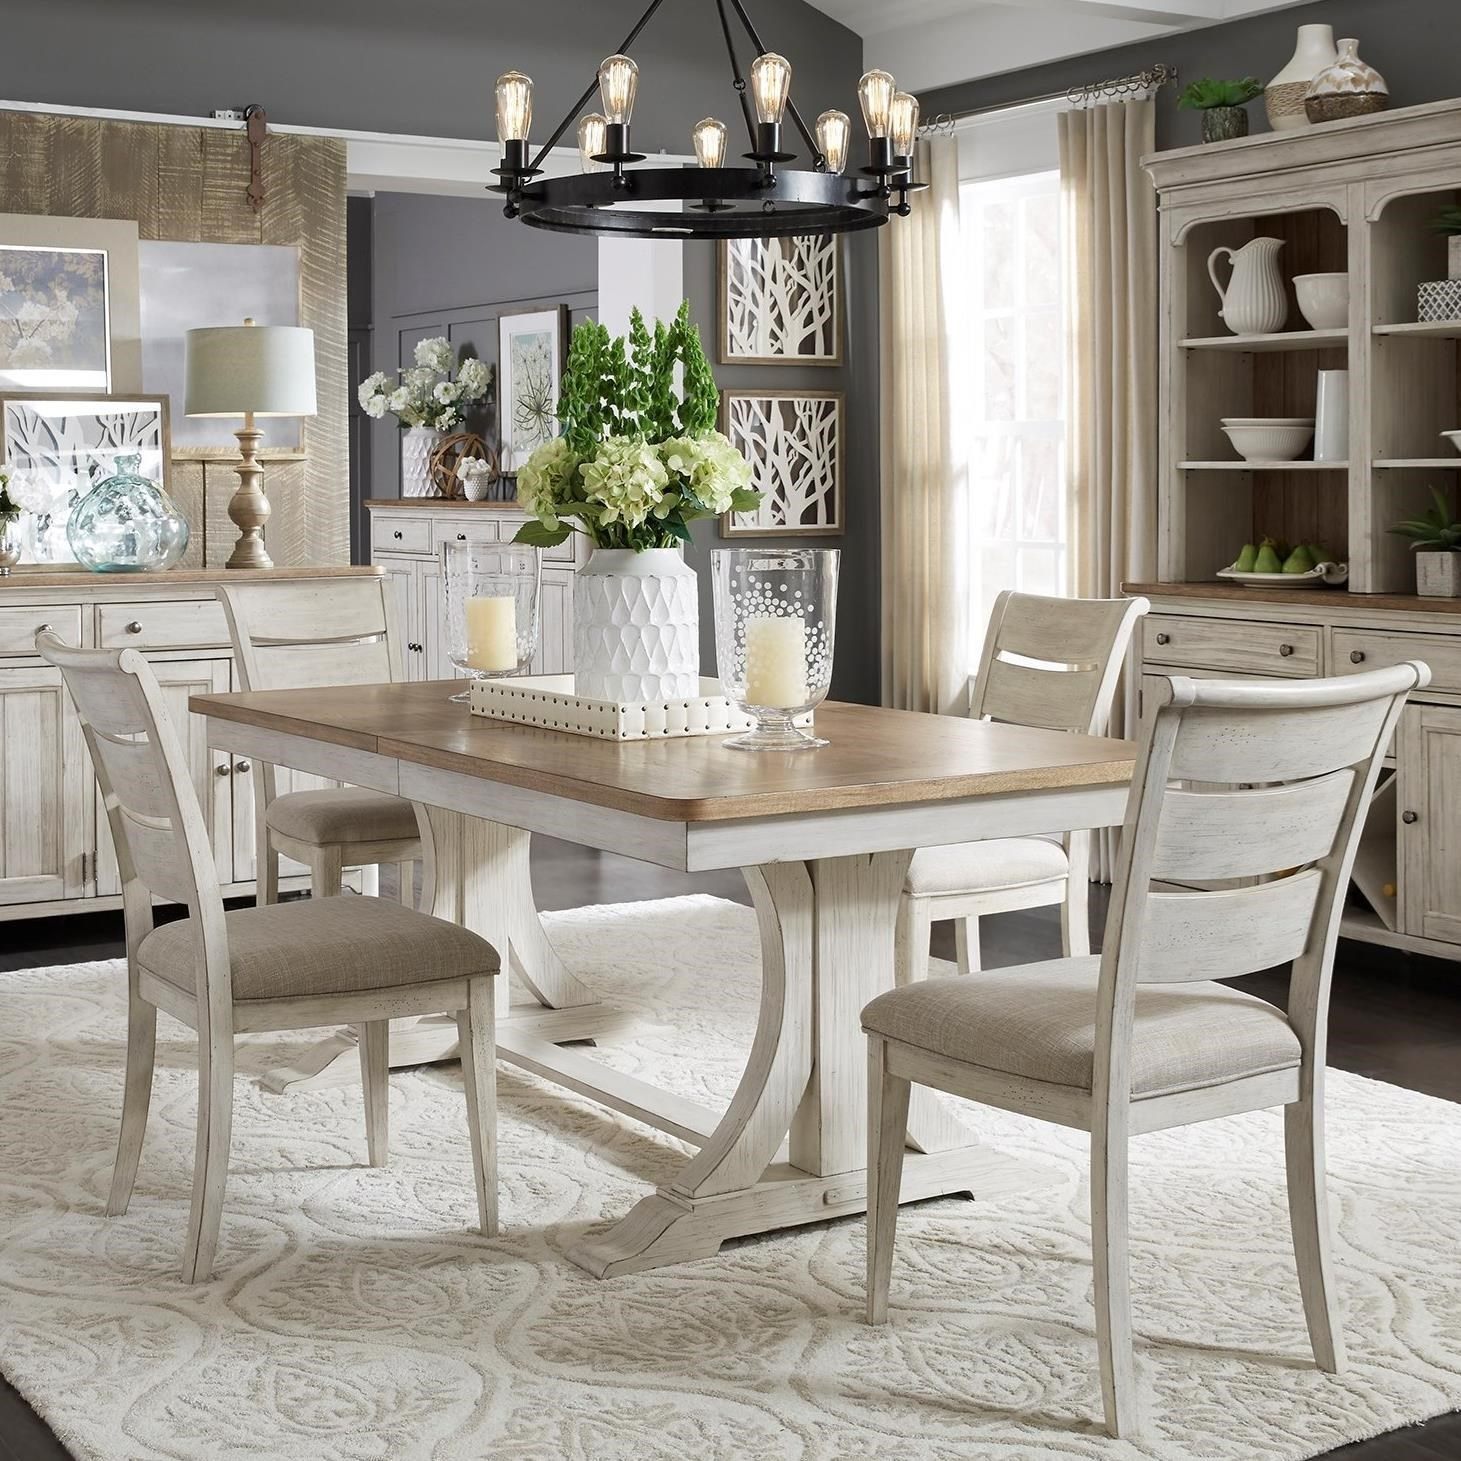 Relaxed Vintage 5-Piece Trestle Table Set